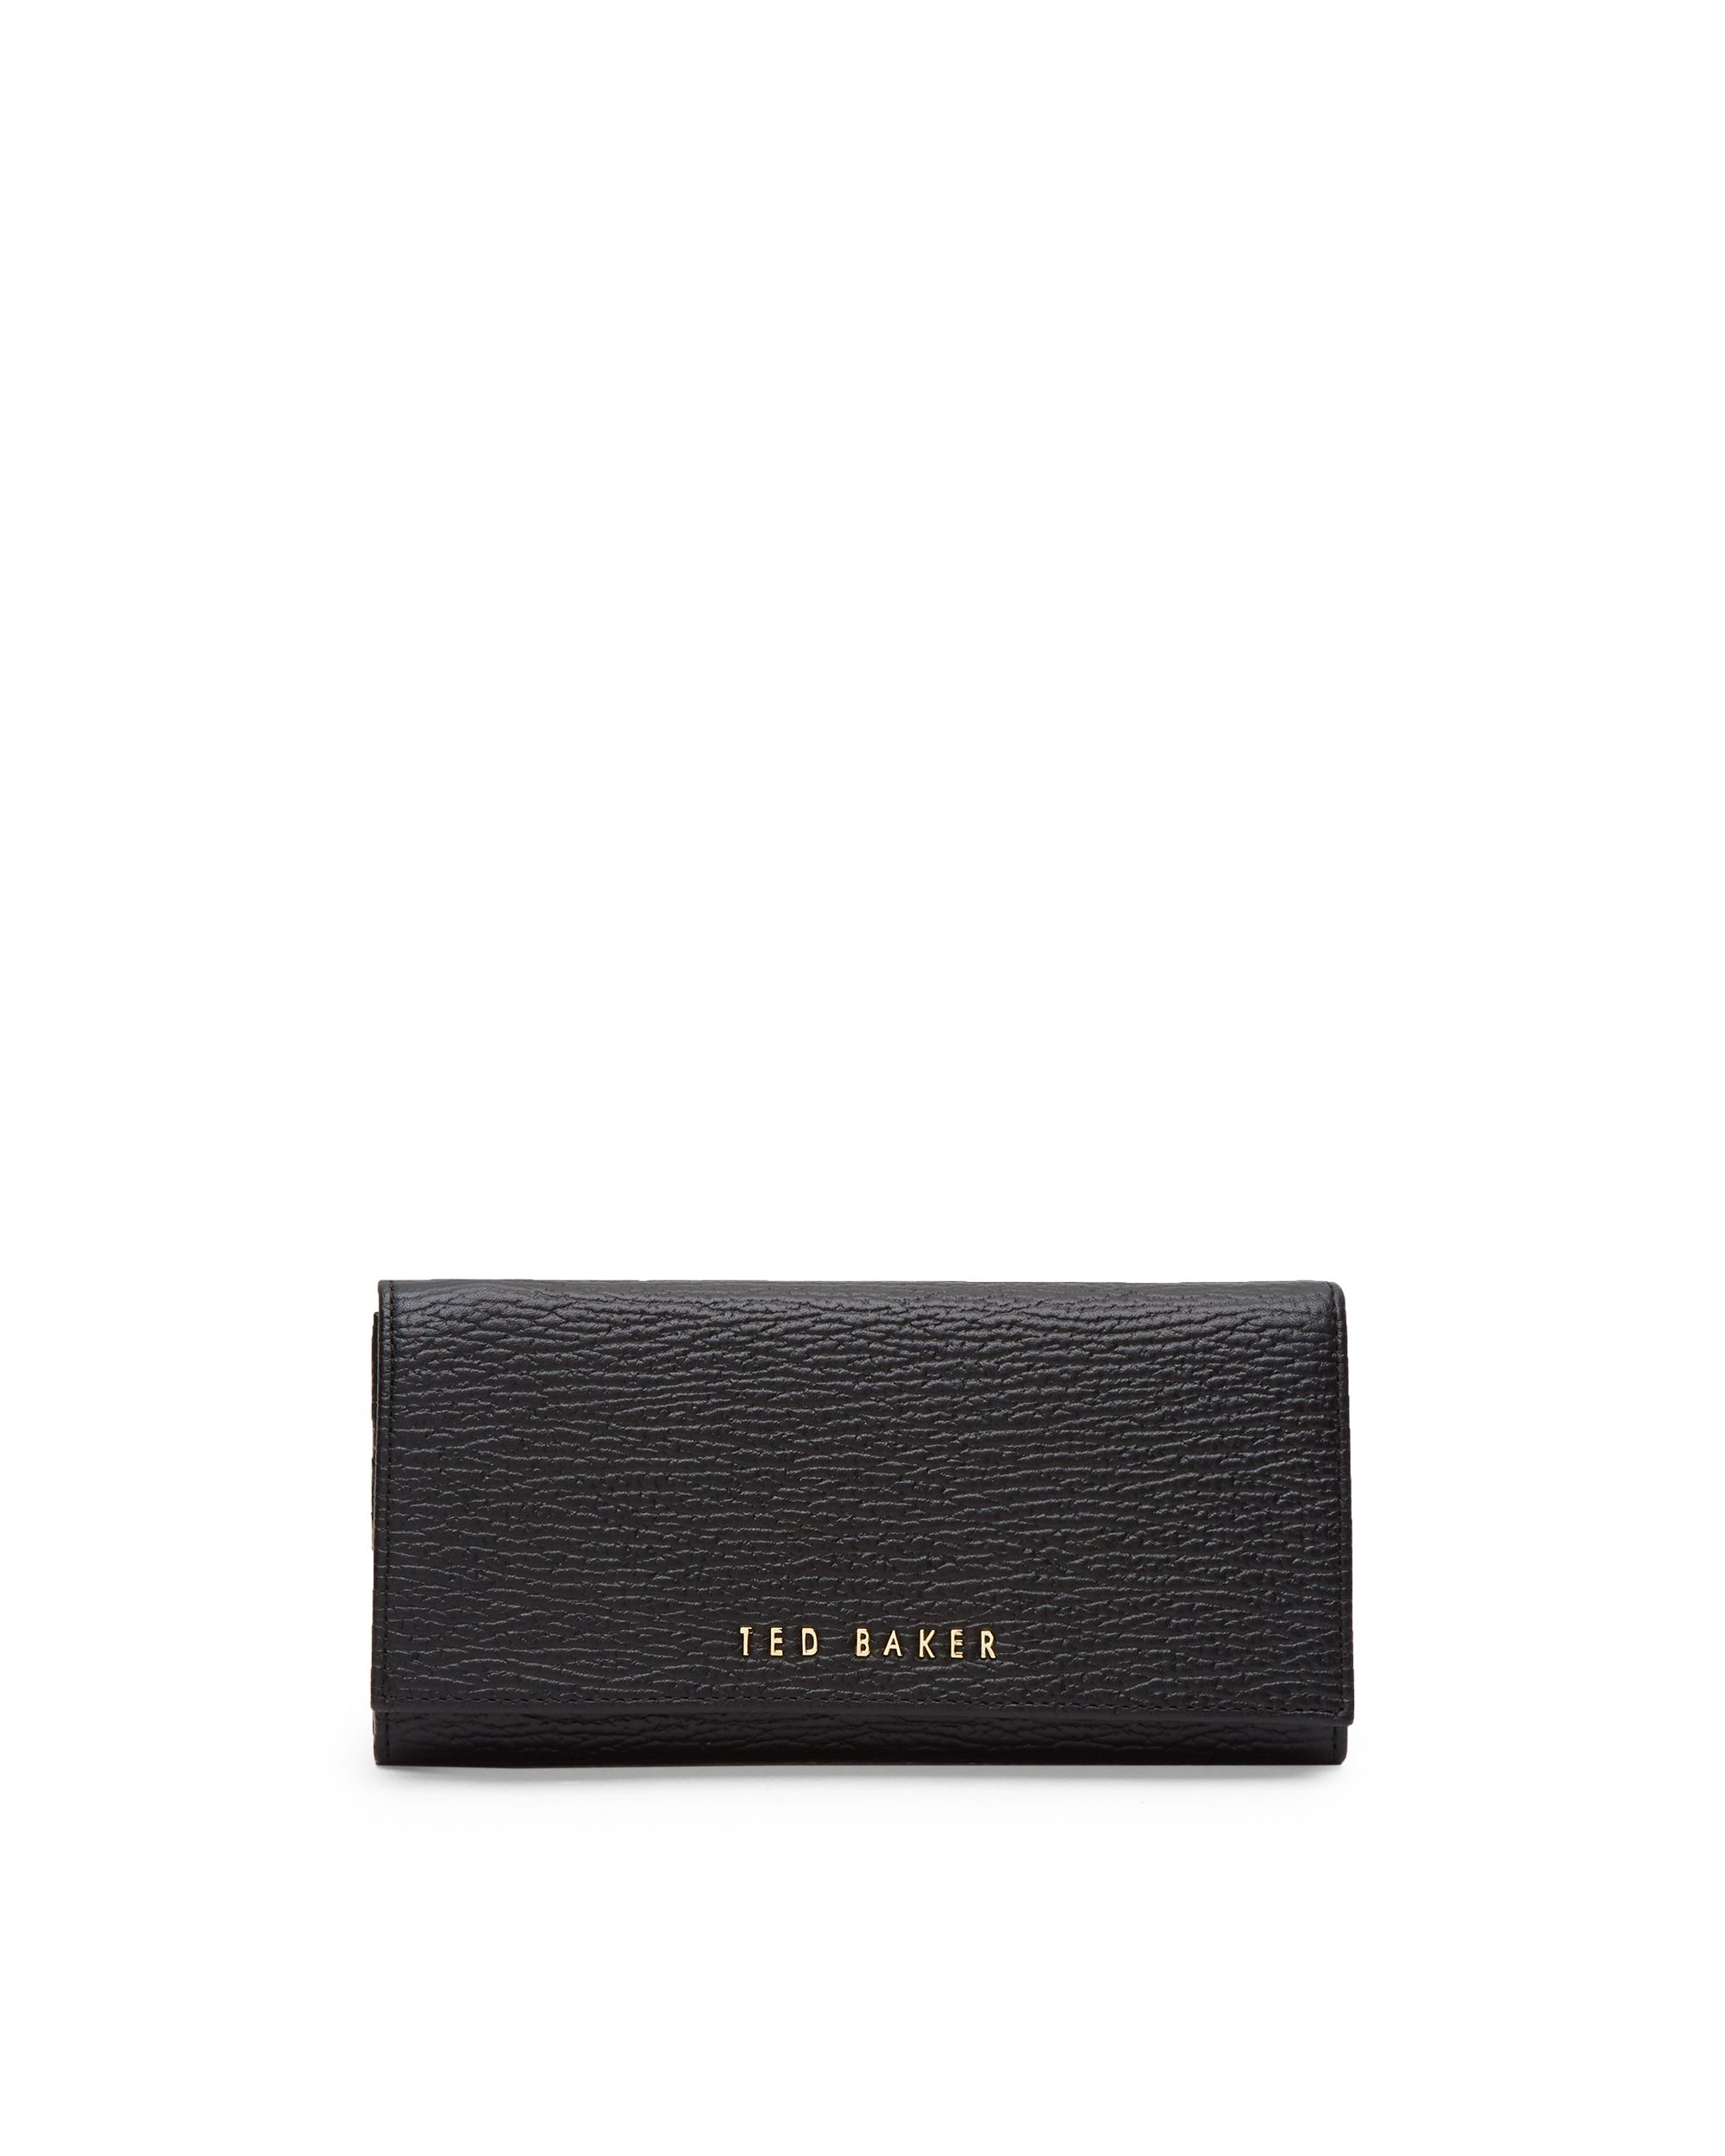 Ted Baker Raelee Textured leather purse Black